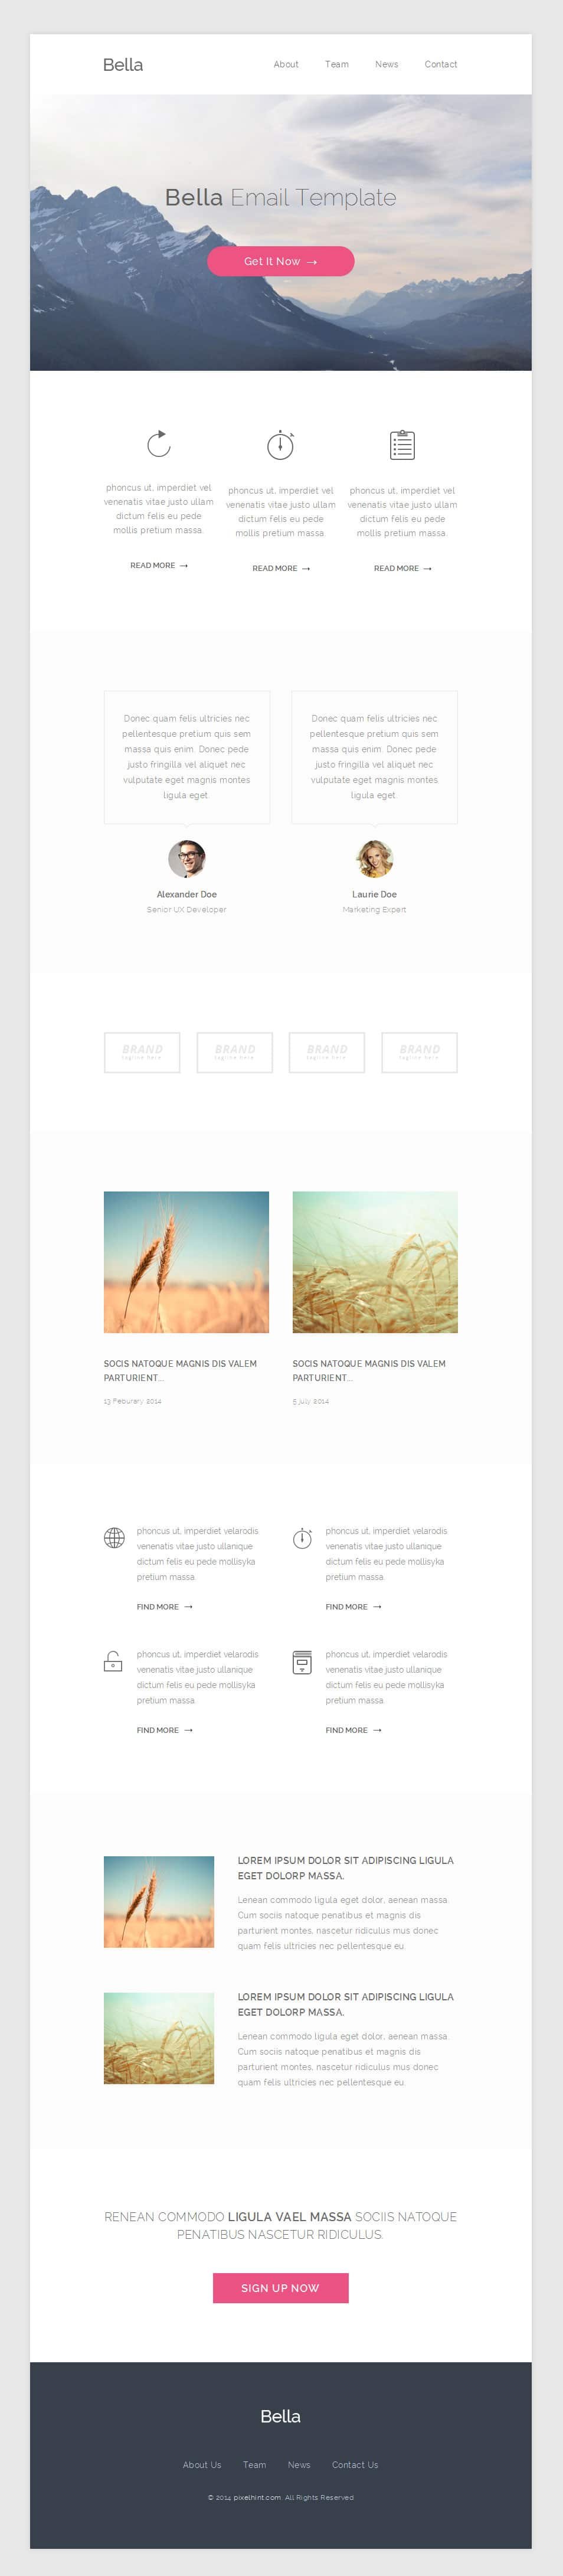 Bella – Free PSD Email Template